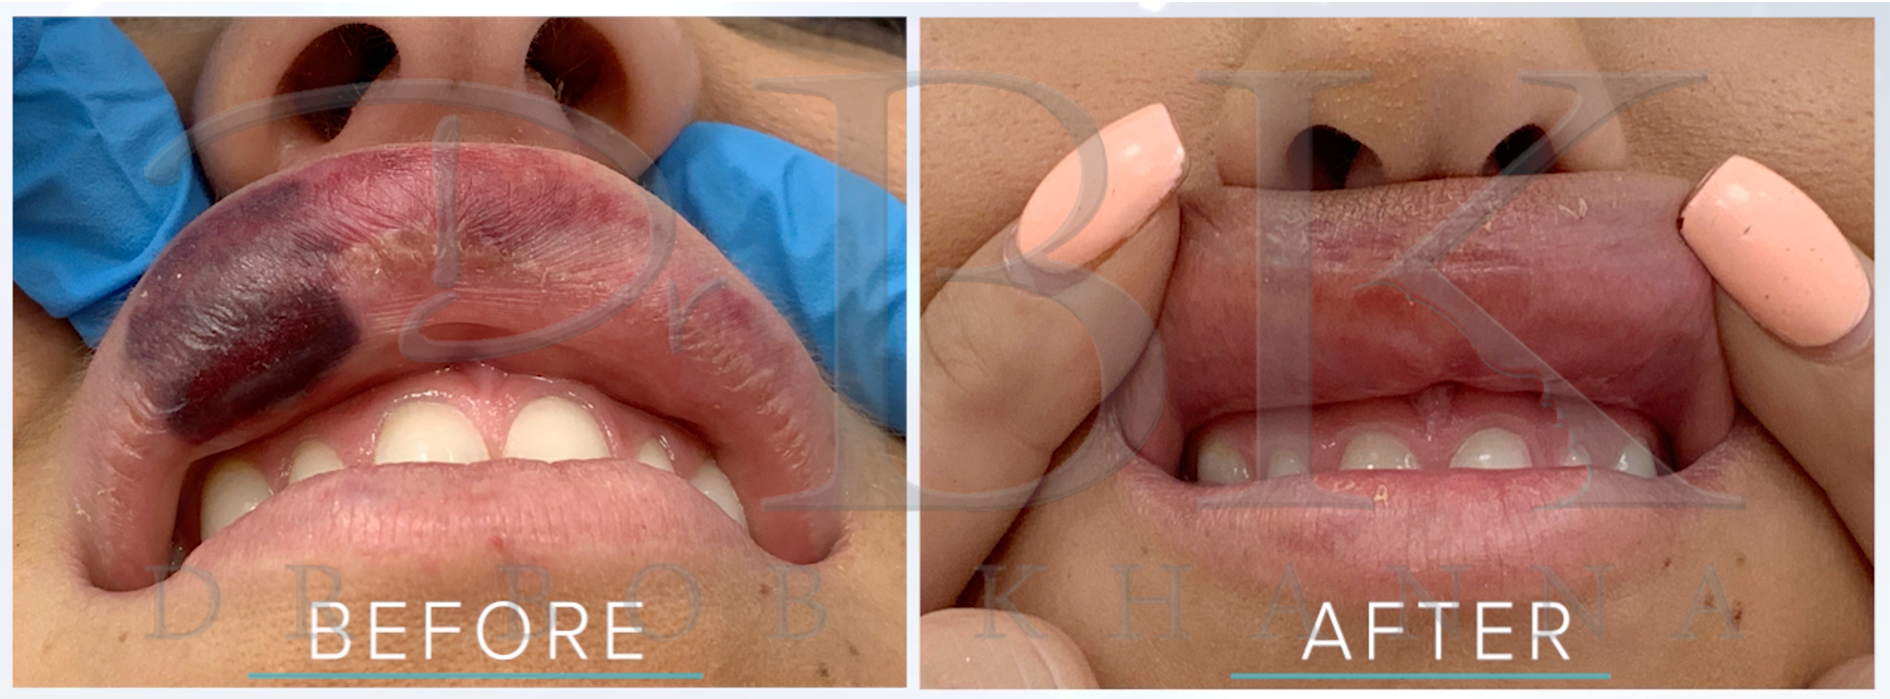 Why you should only get filler done by a Medical Professional: Botched Filler Before & After